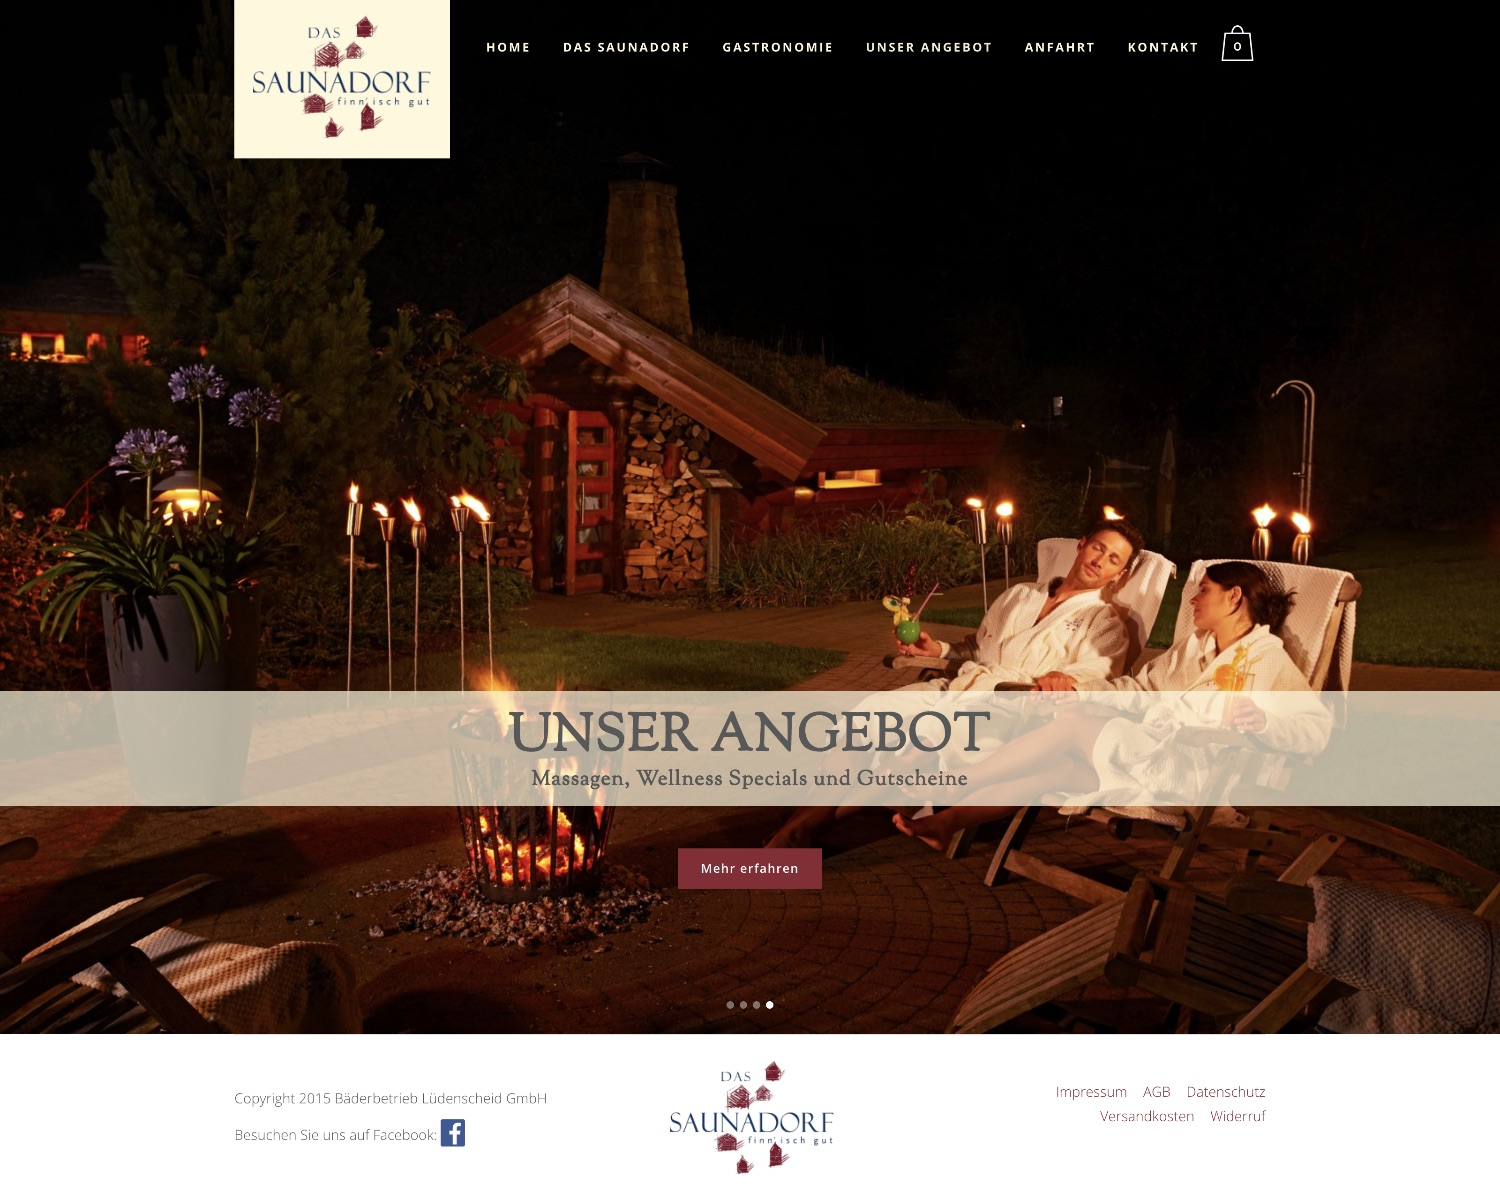 Website Saunadorf in Lüdenscheid